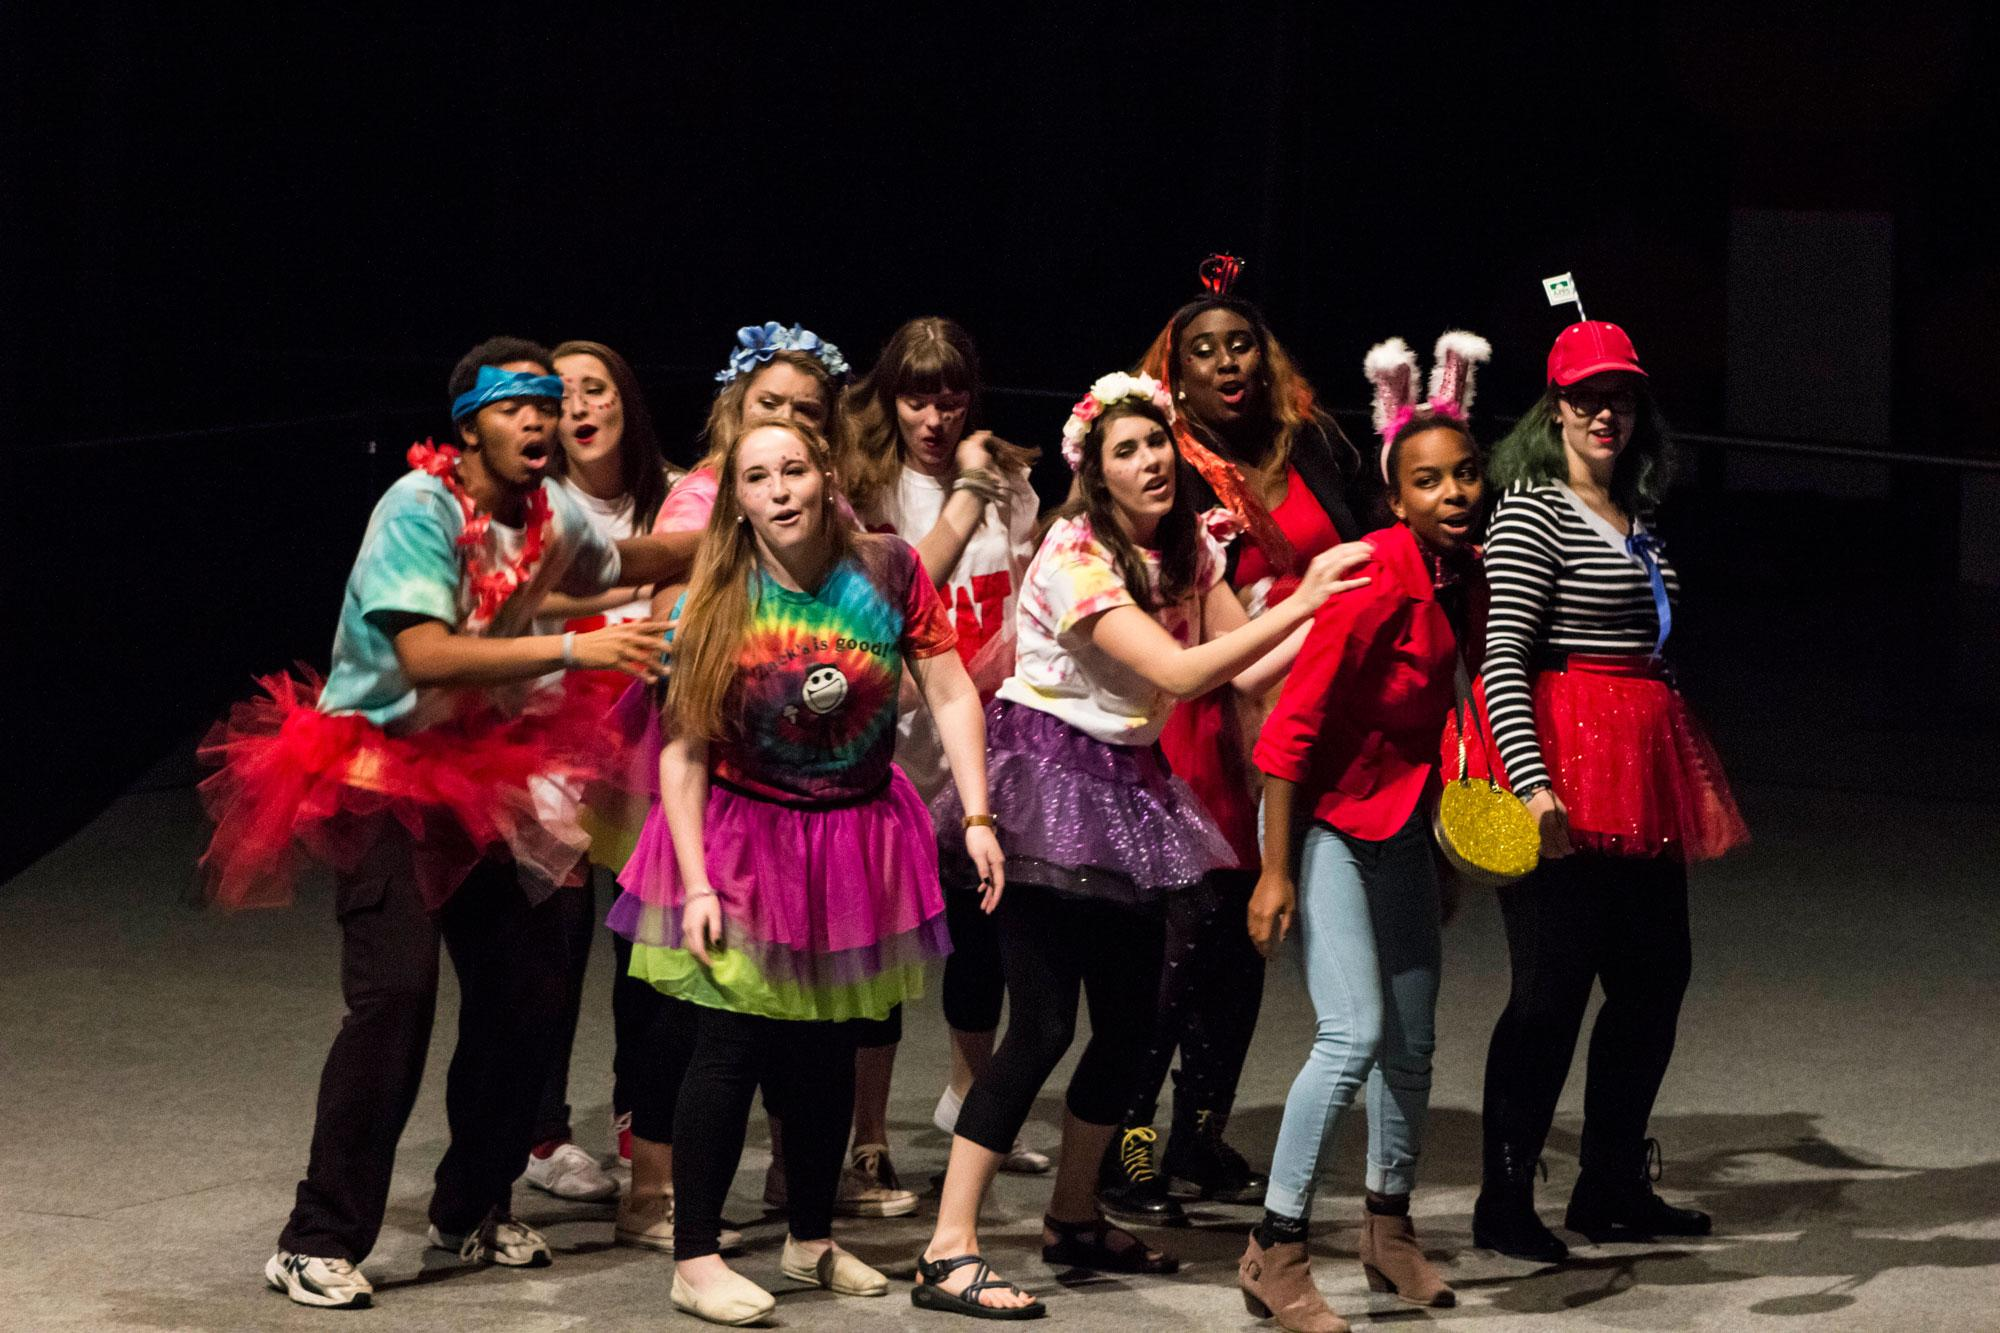 In photos: Lip Sync 2015